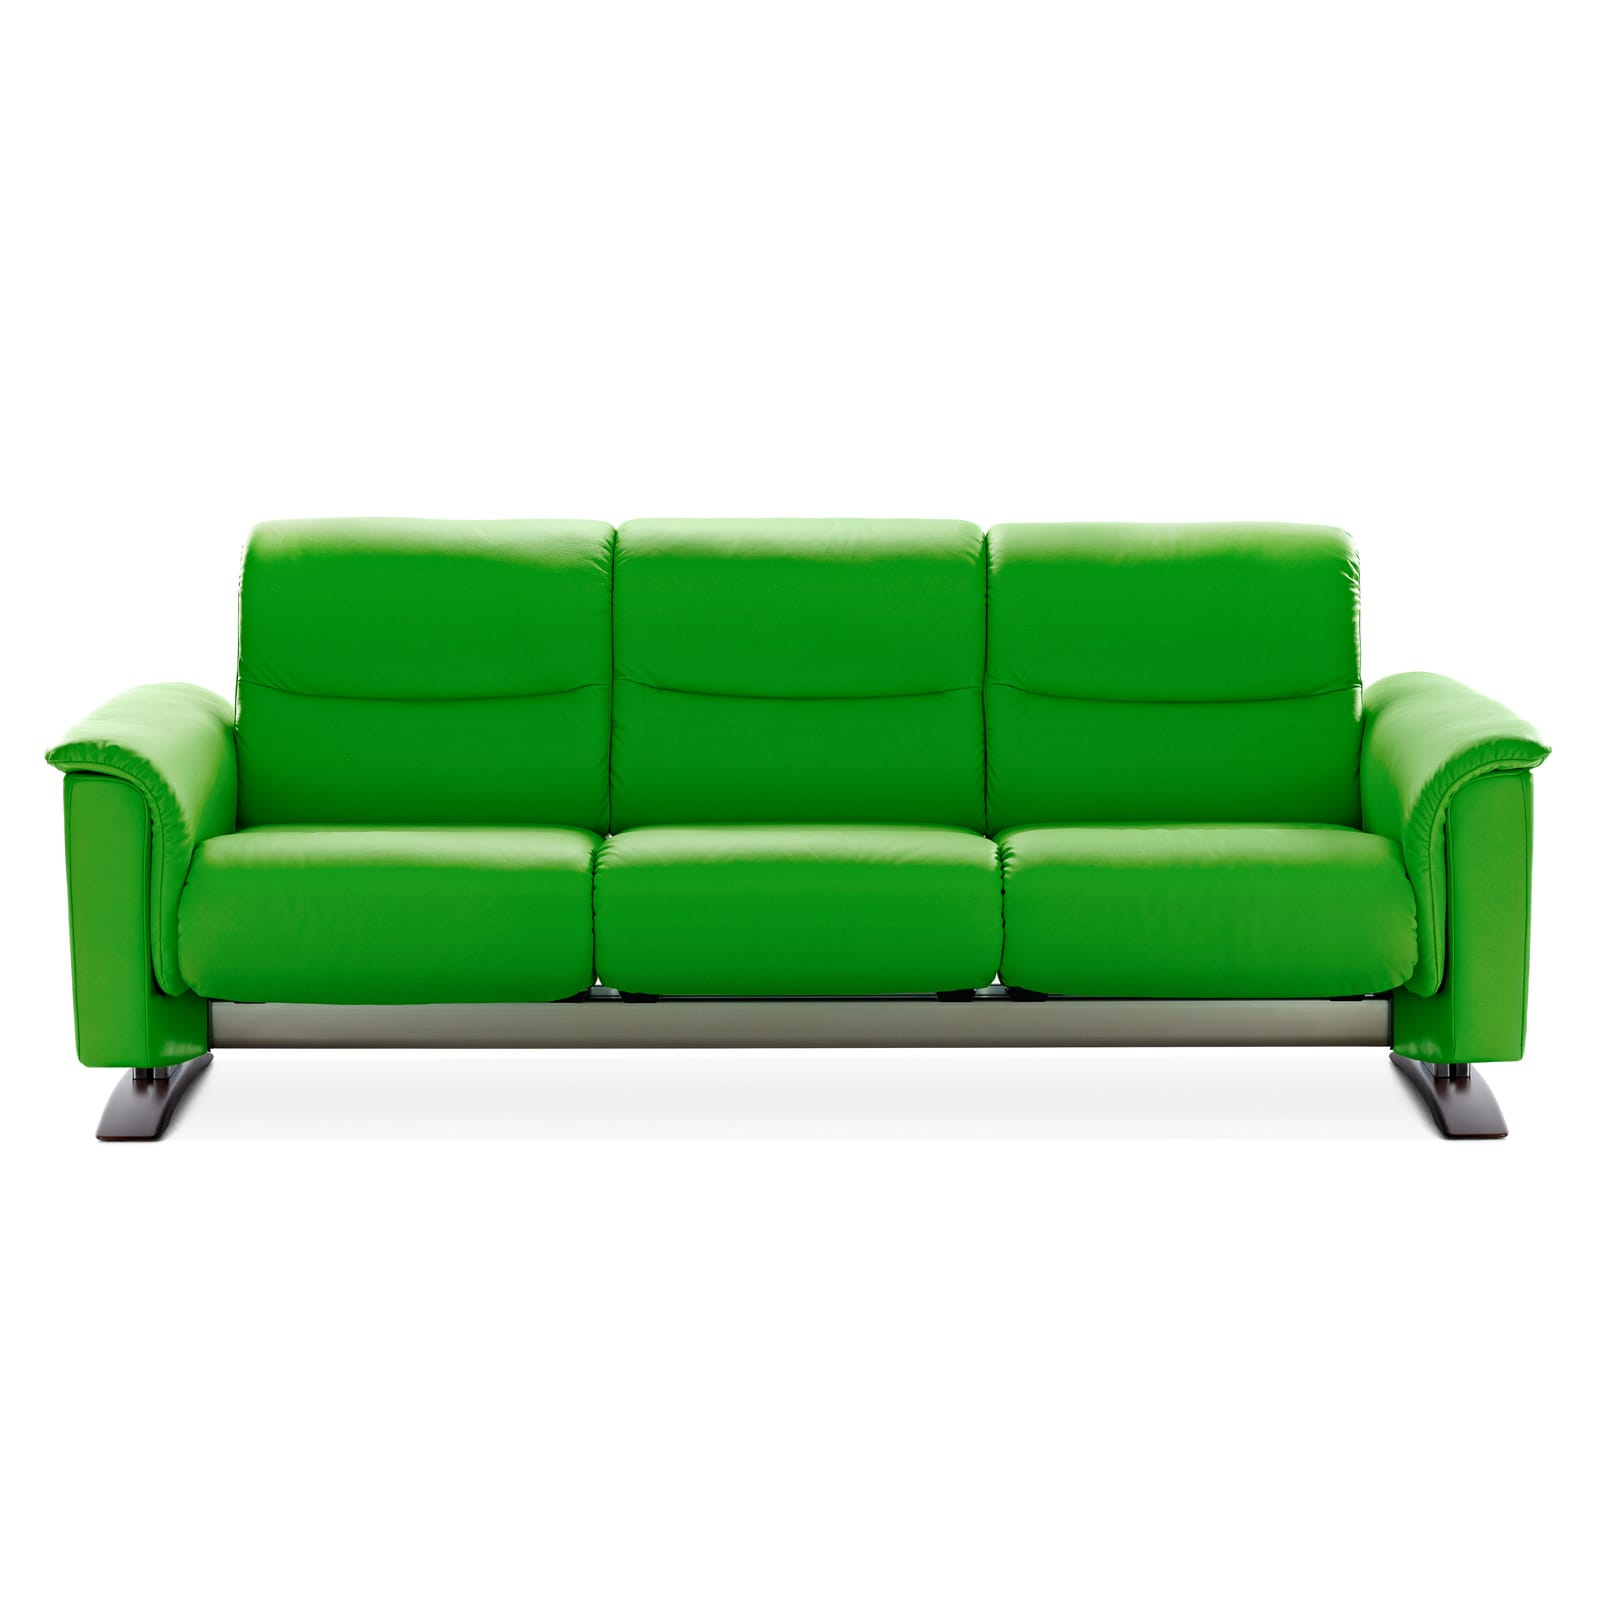 stressless sofa 3 sitzer panorama paloma summer green. Black Bedroom Furniture Sets. Home Design Ideas